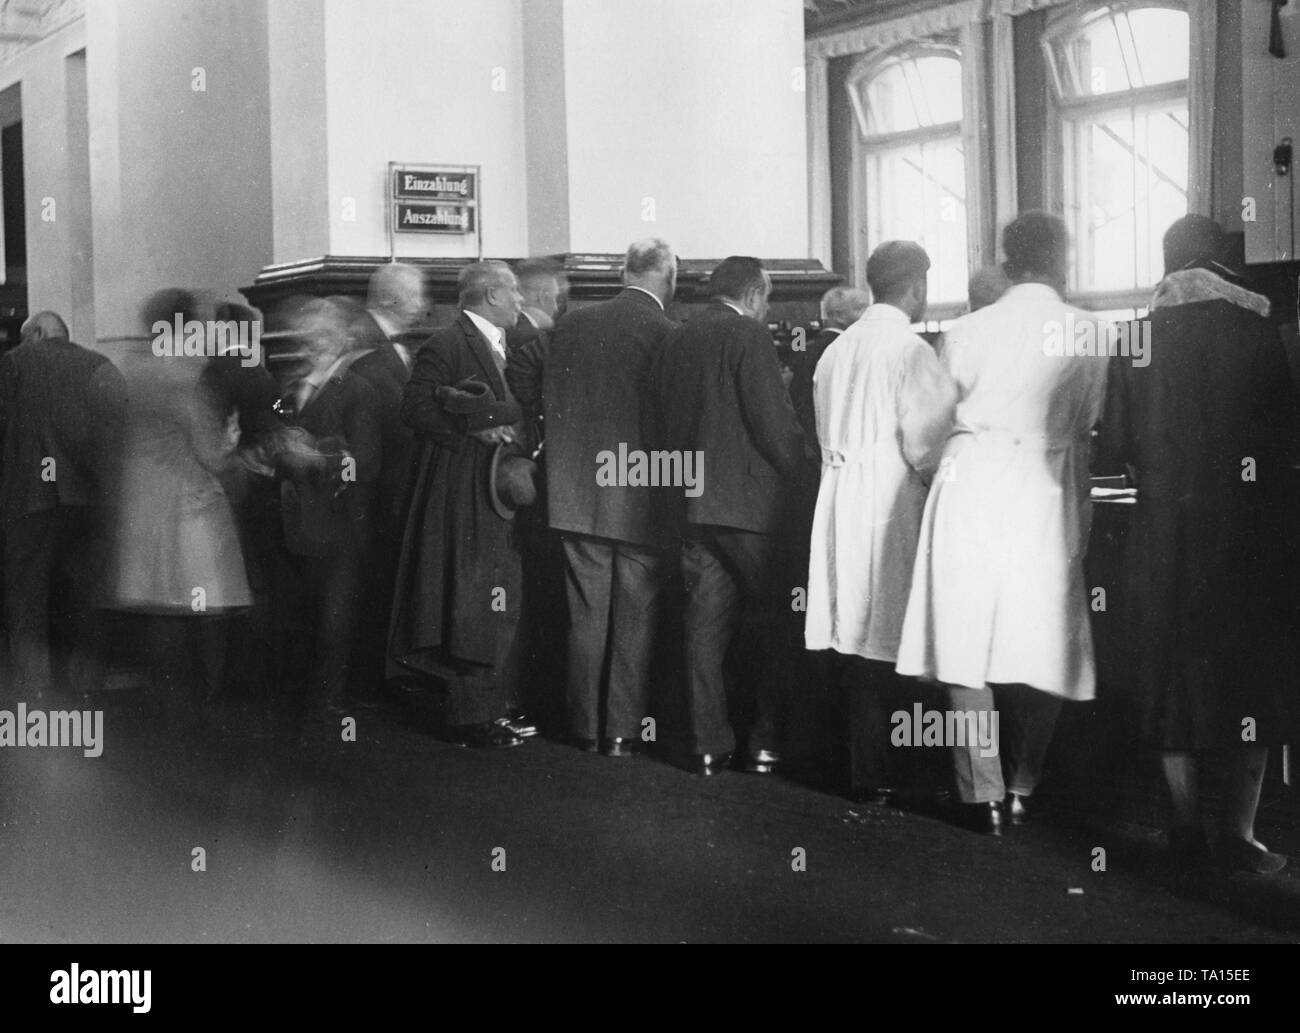 After the banking crisis, triggered by the insolvency of the DANAT bank (Darmstaedter and Nationalbank), many panicked depositors rush the counters. - Stock Image